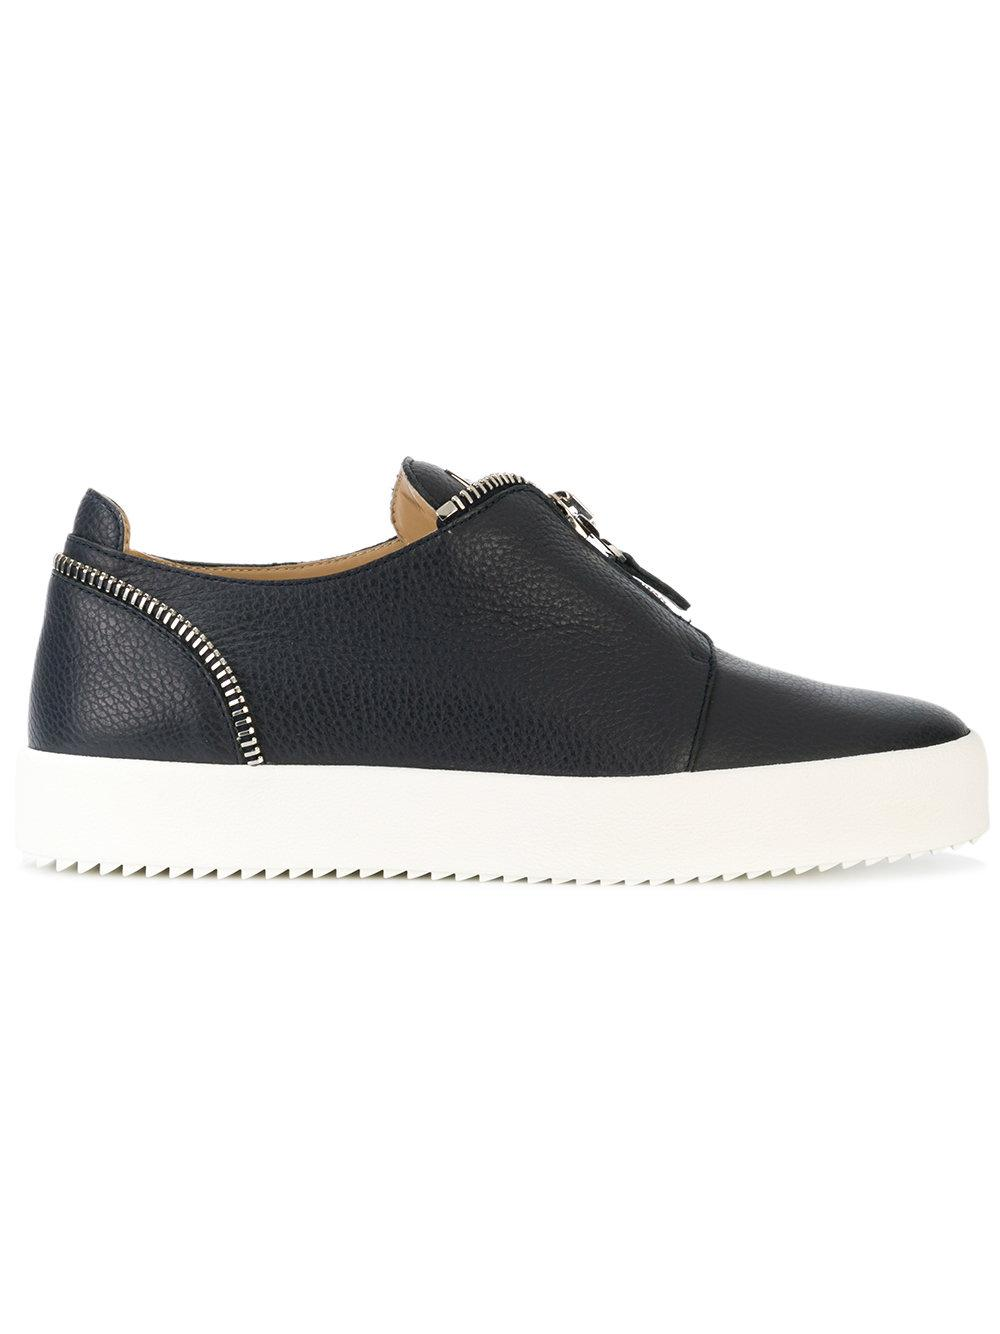 Giuseppe Zanotti Zip Detail Slip-On Sneakers